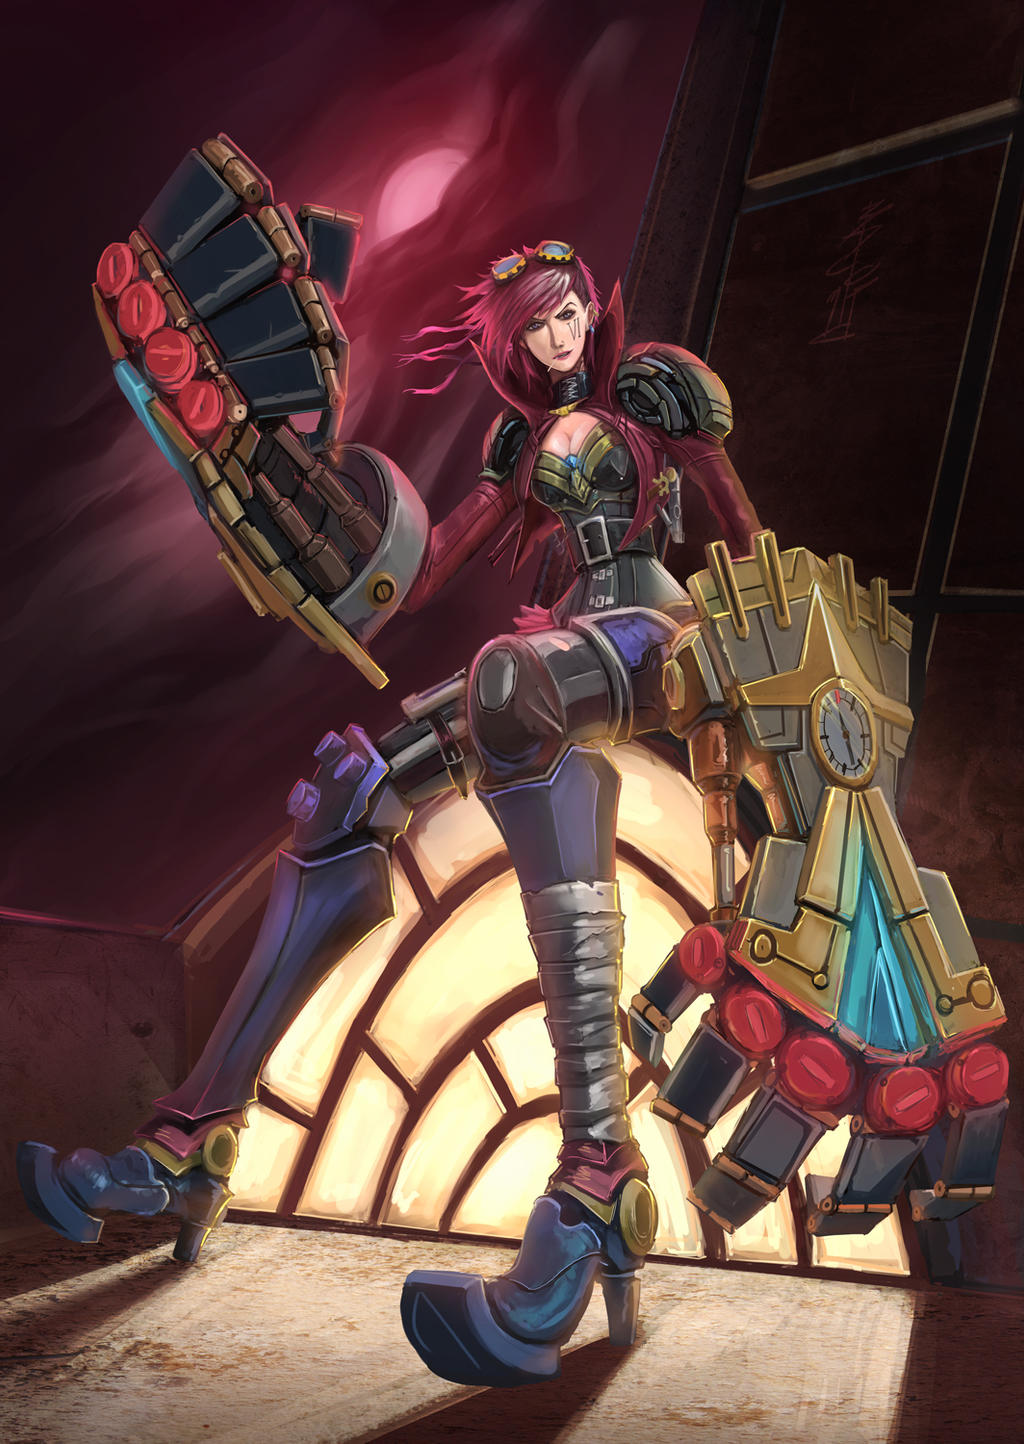 Vi - League of Legends by BADCOMPZERO on DeviantArt